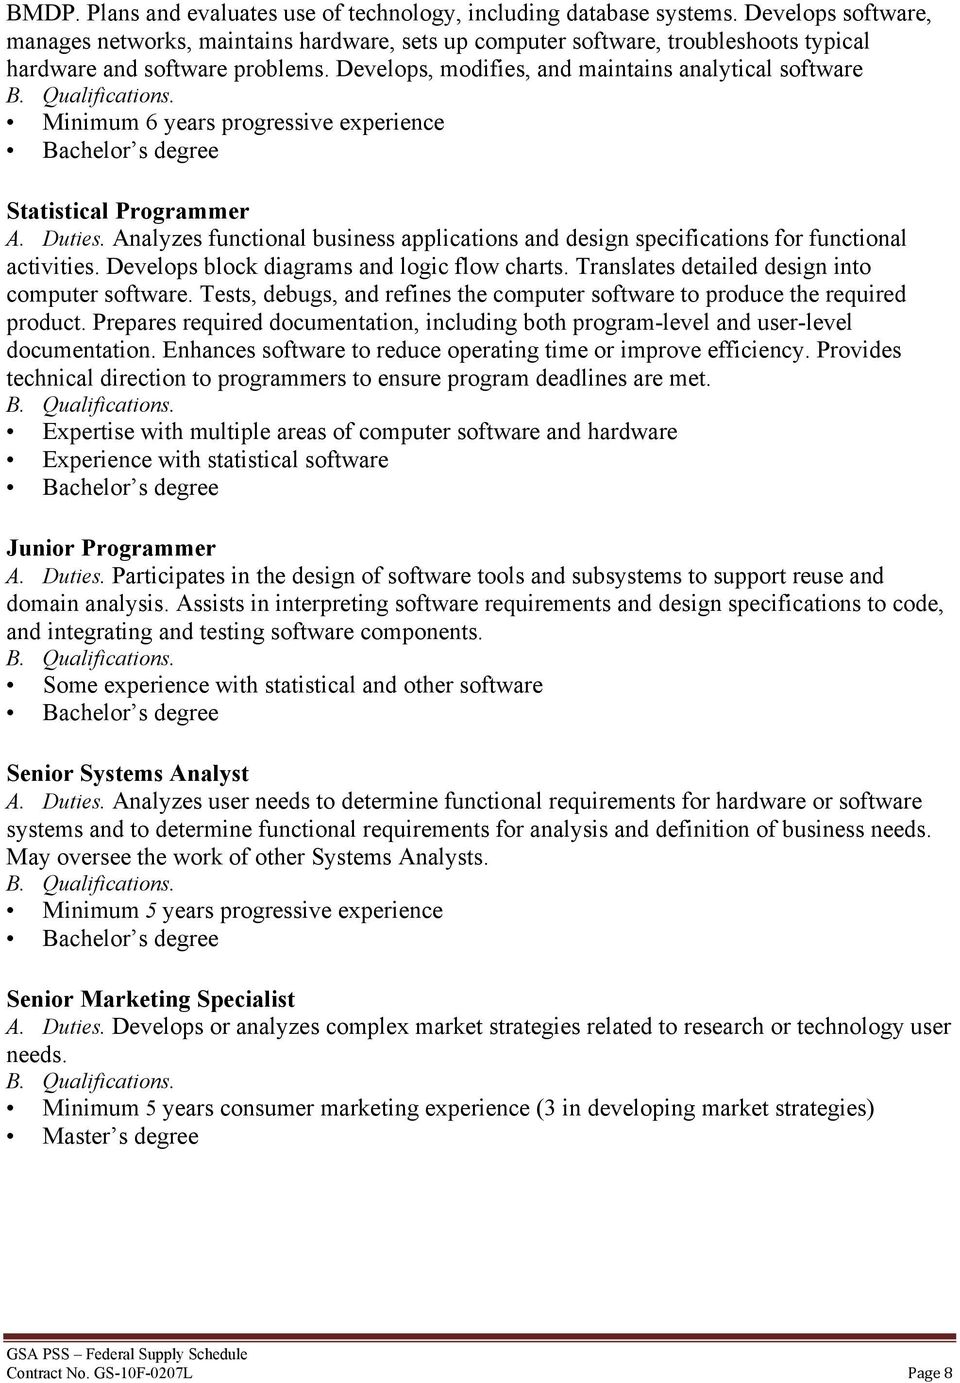 Develops, modifies, and maintains analytical software Minimum 6 years progressive experience Statistical Programmer A. Duties.